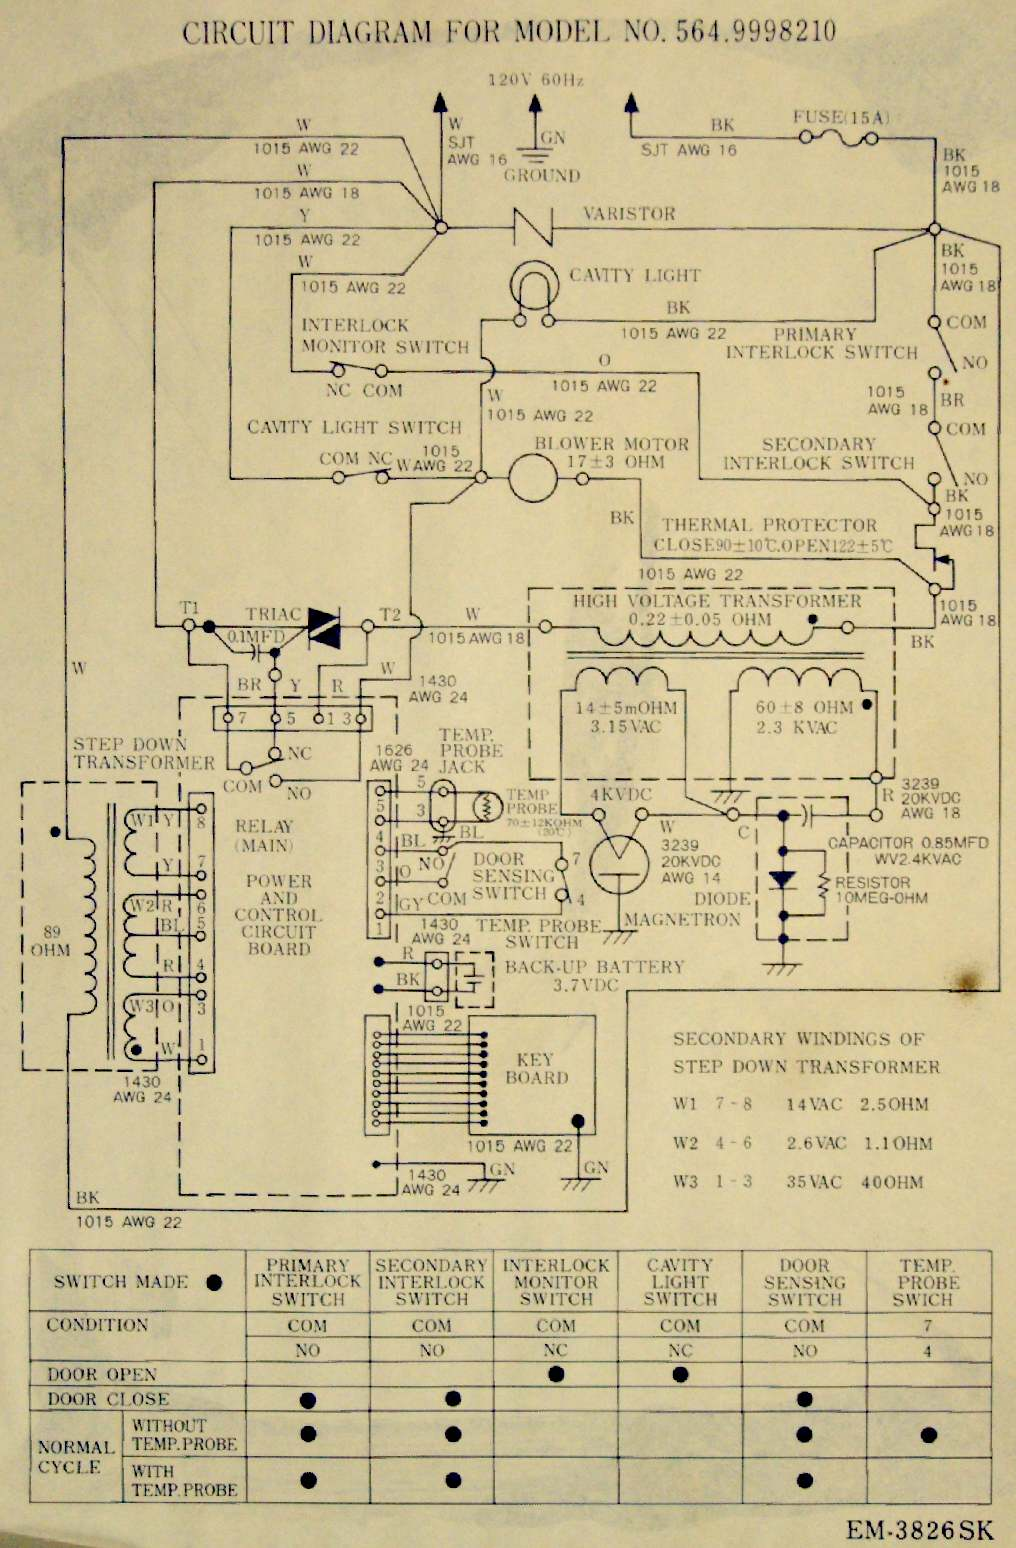 cimg1968 microwave oven schematic resistance soldering transformer the smell of molten projects ge transformer wiring diagram at crackthecode.co